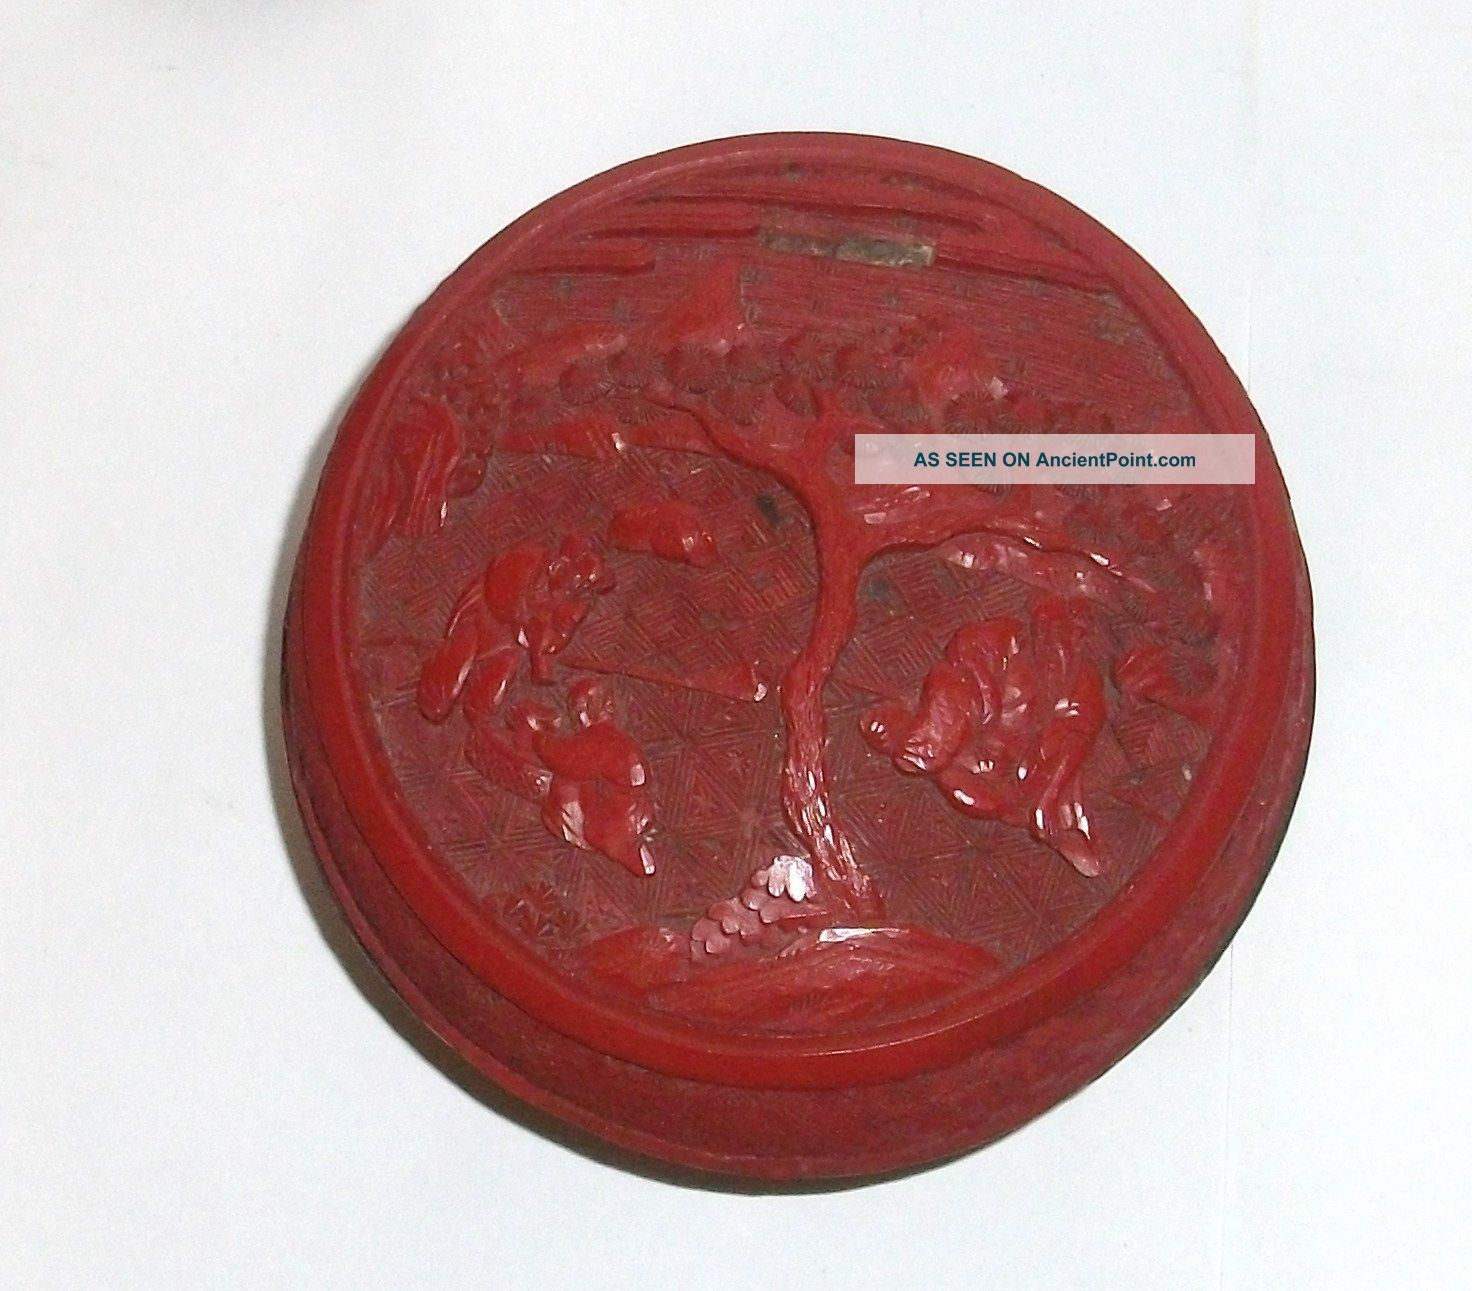 Old 19th Century Chinese Floral Cinnabar Lacquer Jar Box Boxes photo